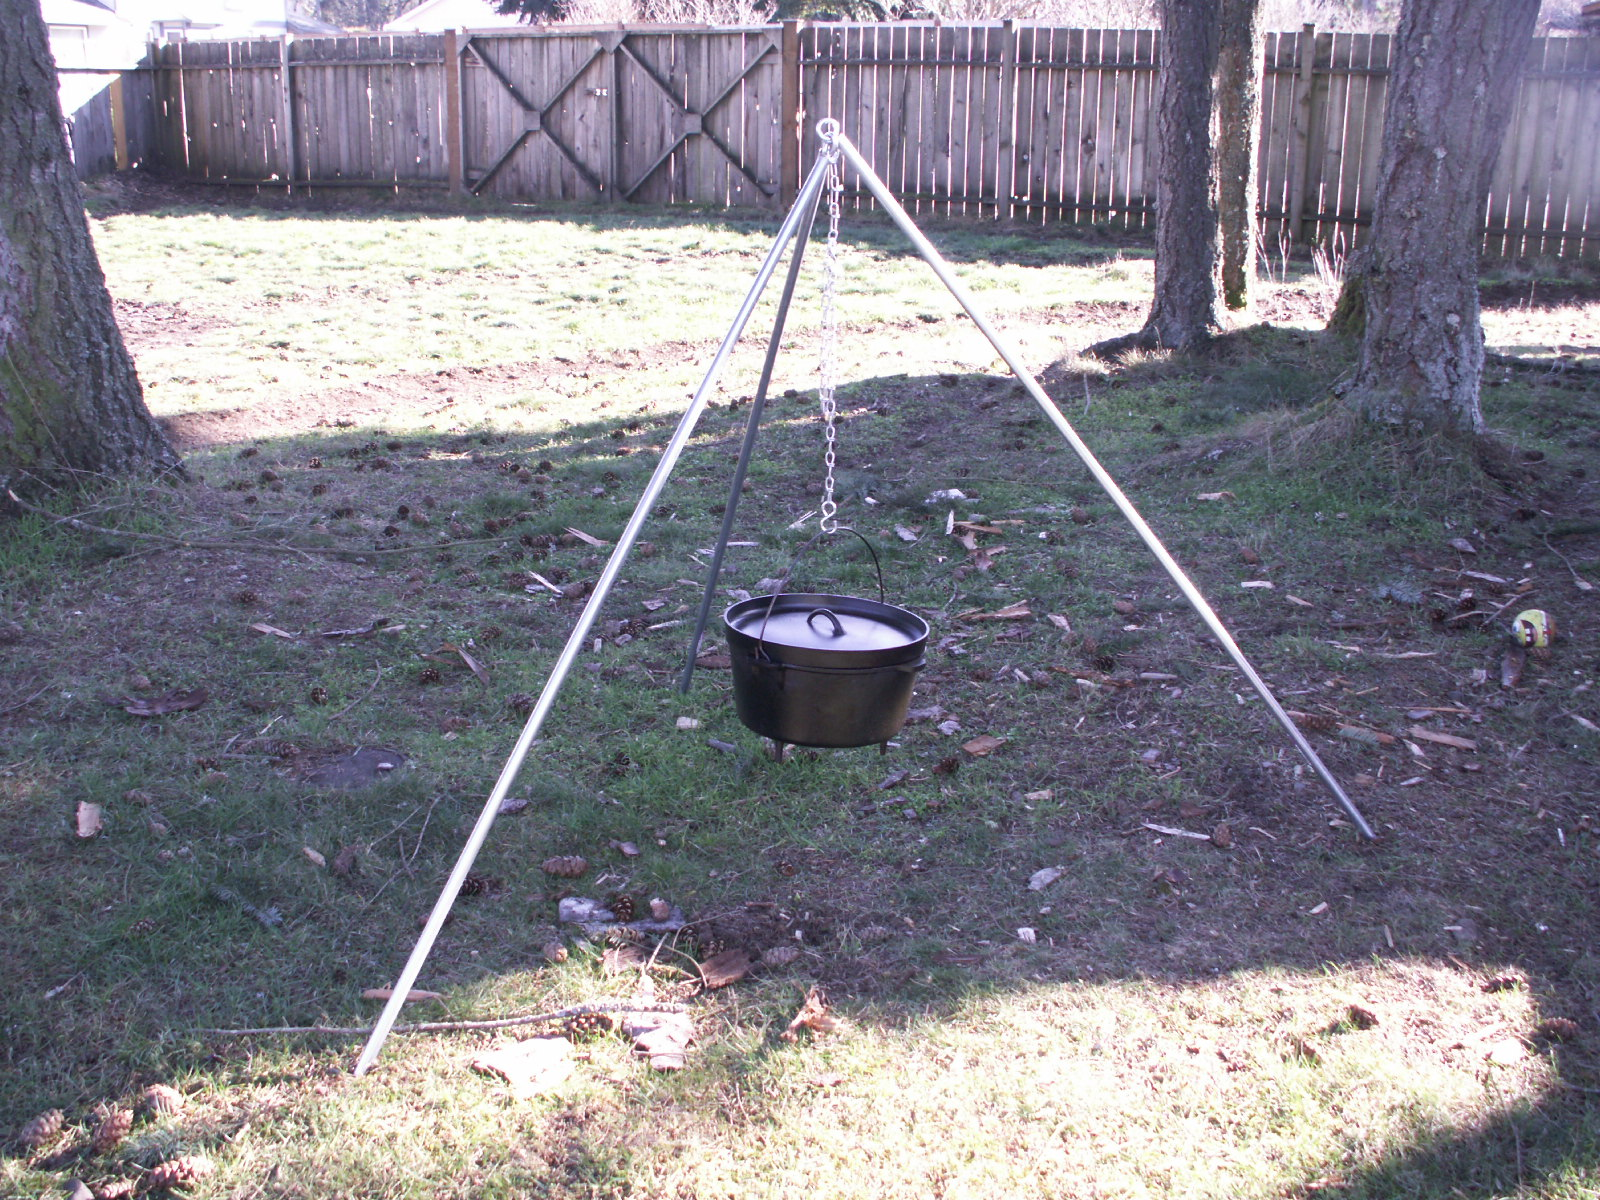 Camping tripod for cooking over fire